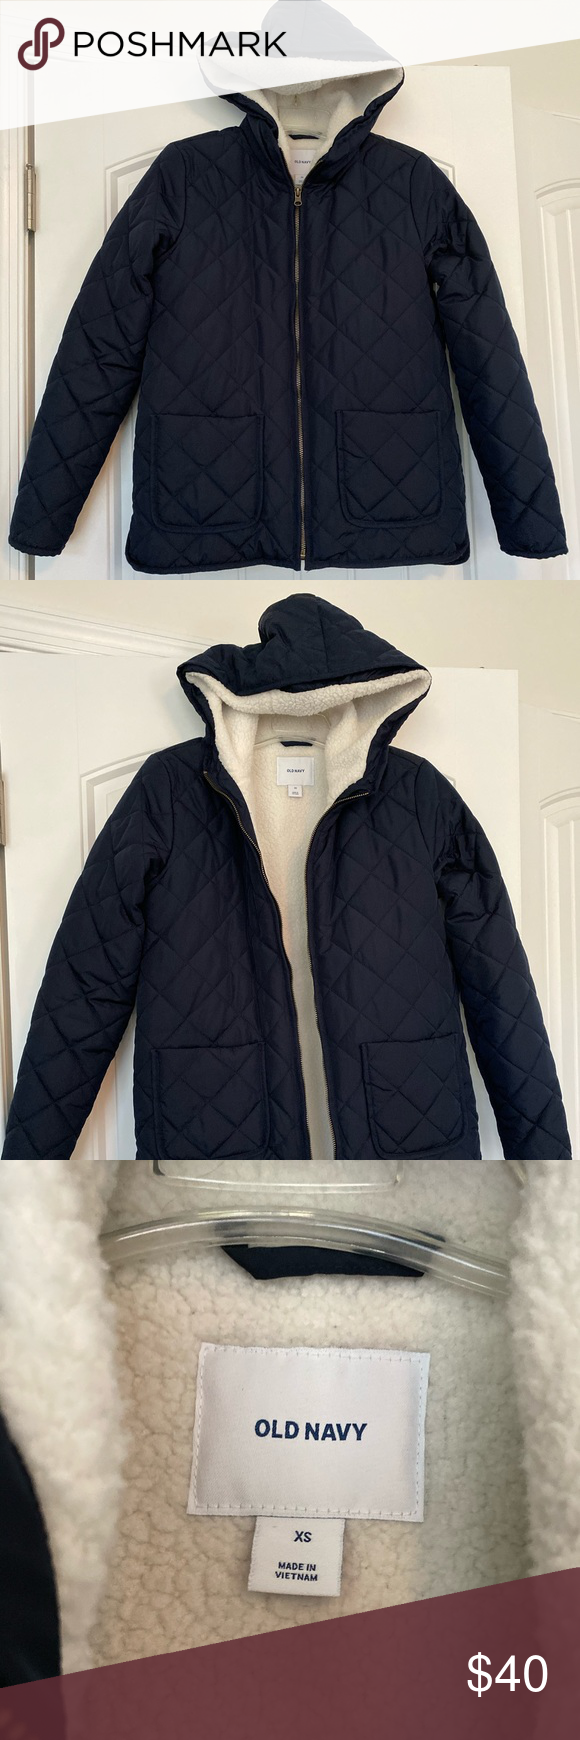 Quilted Navy Blue Sherpa Lined Puffer Jacket Xs Brand New Without Tags Size Xs In Old Navy Lovely Navy Blue Color Pit Sherpa Lined Jackets Puffer Jackets [ 1740 x 580 Pixel ]